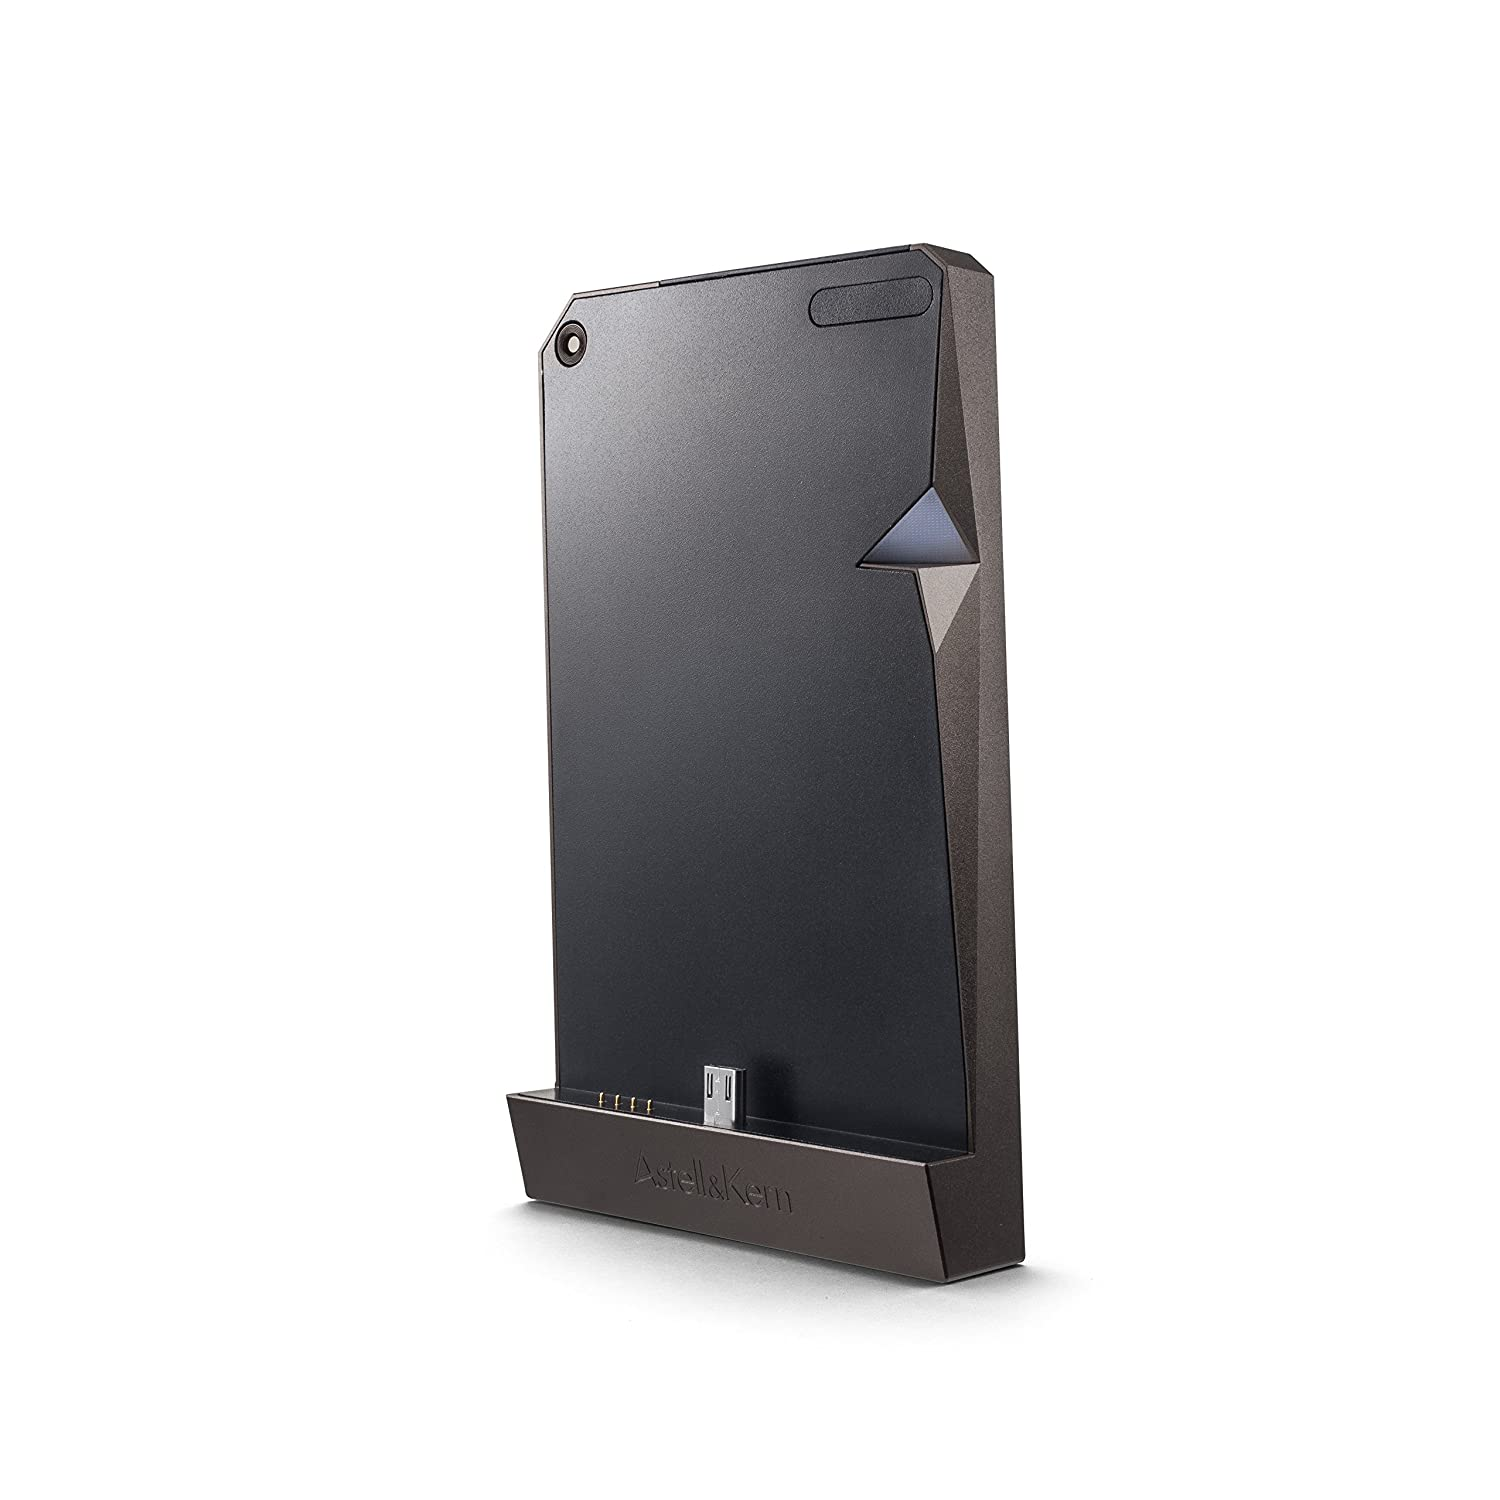 Amazon Astell & Kern AK300 Series Headphone Amplifer in